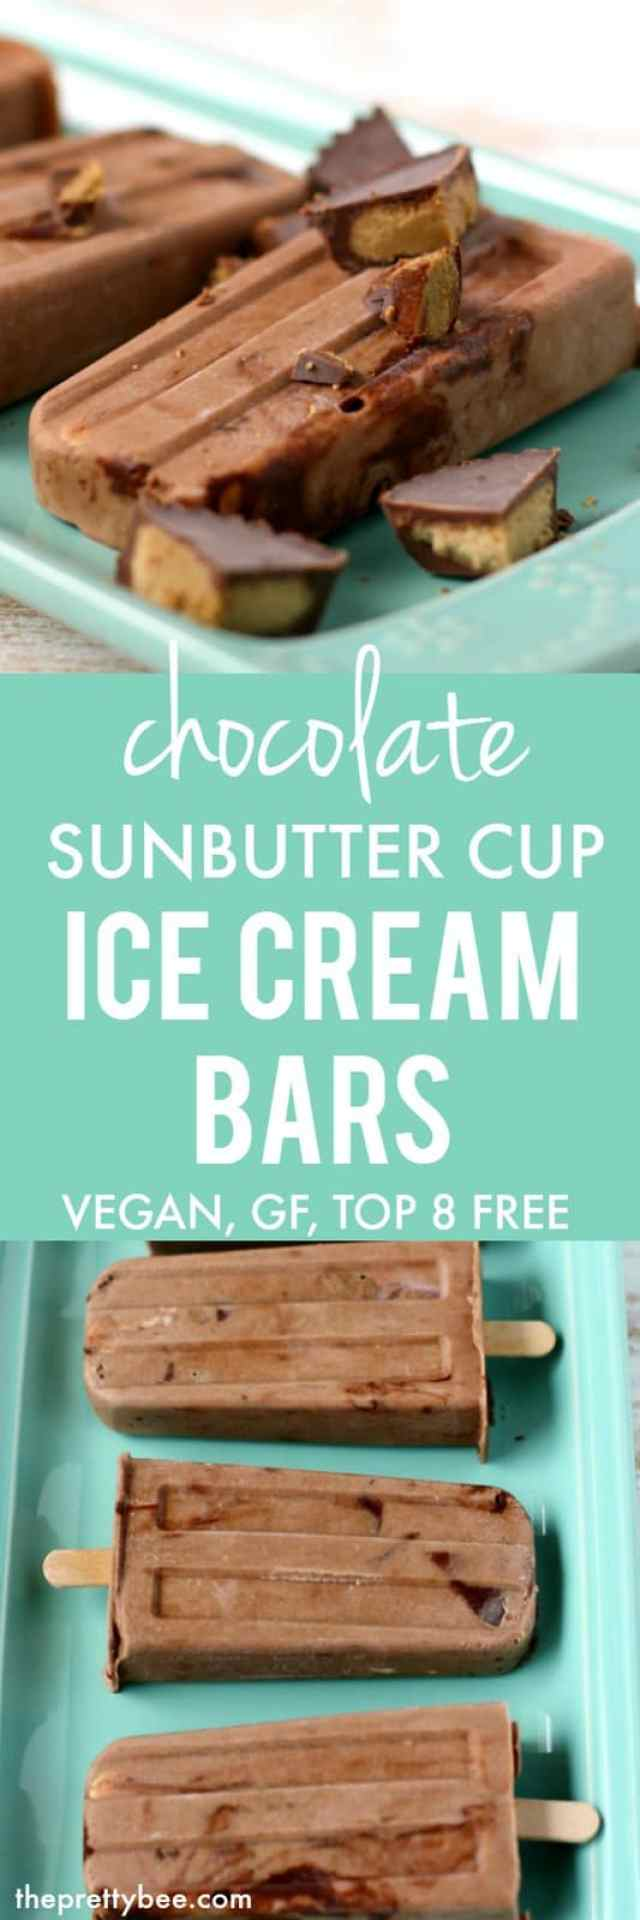 Chocolate sunbutter cup ice cream bars are a delicious allergy friendly treat!